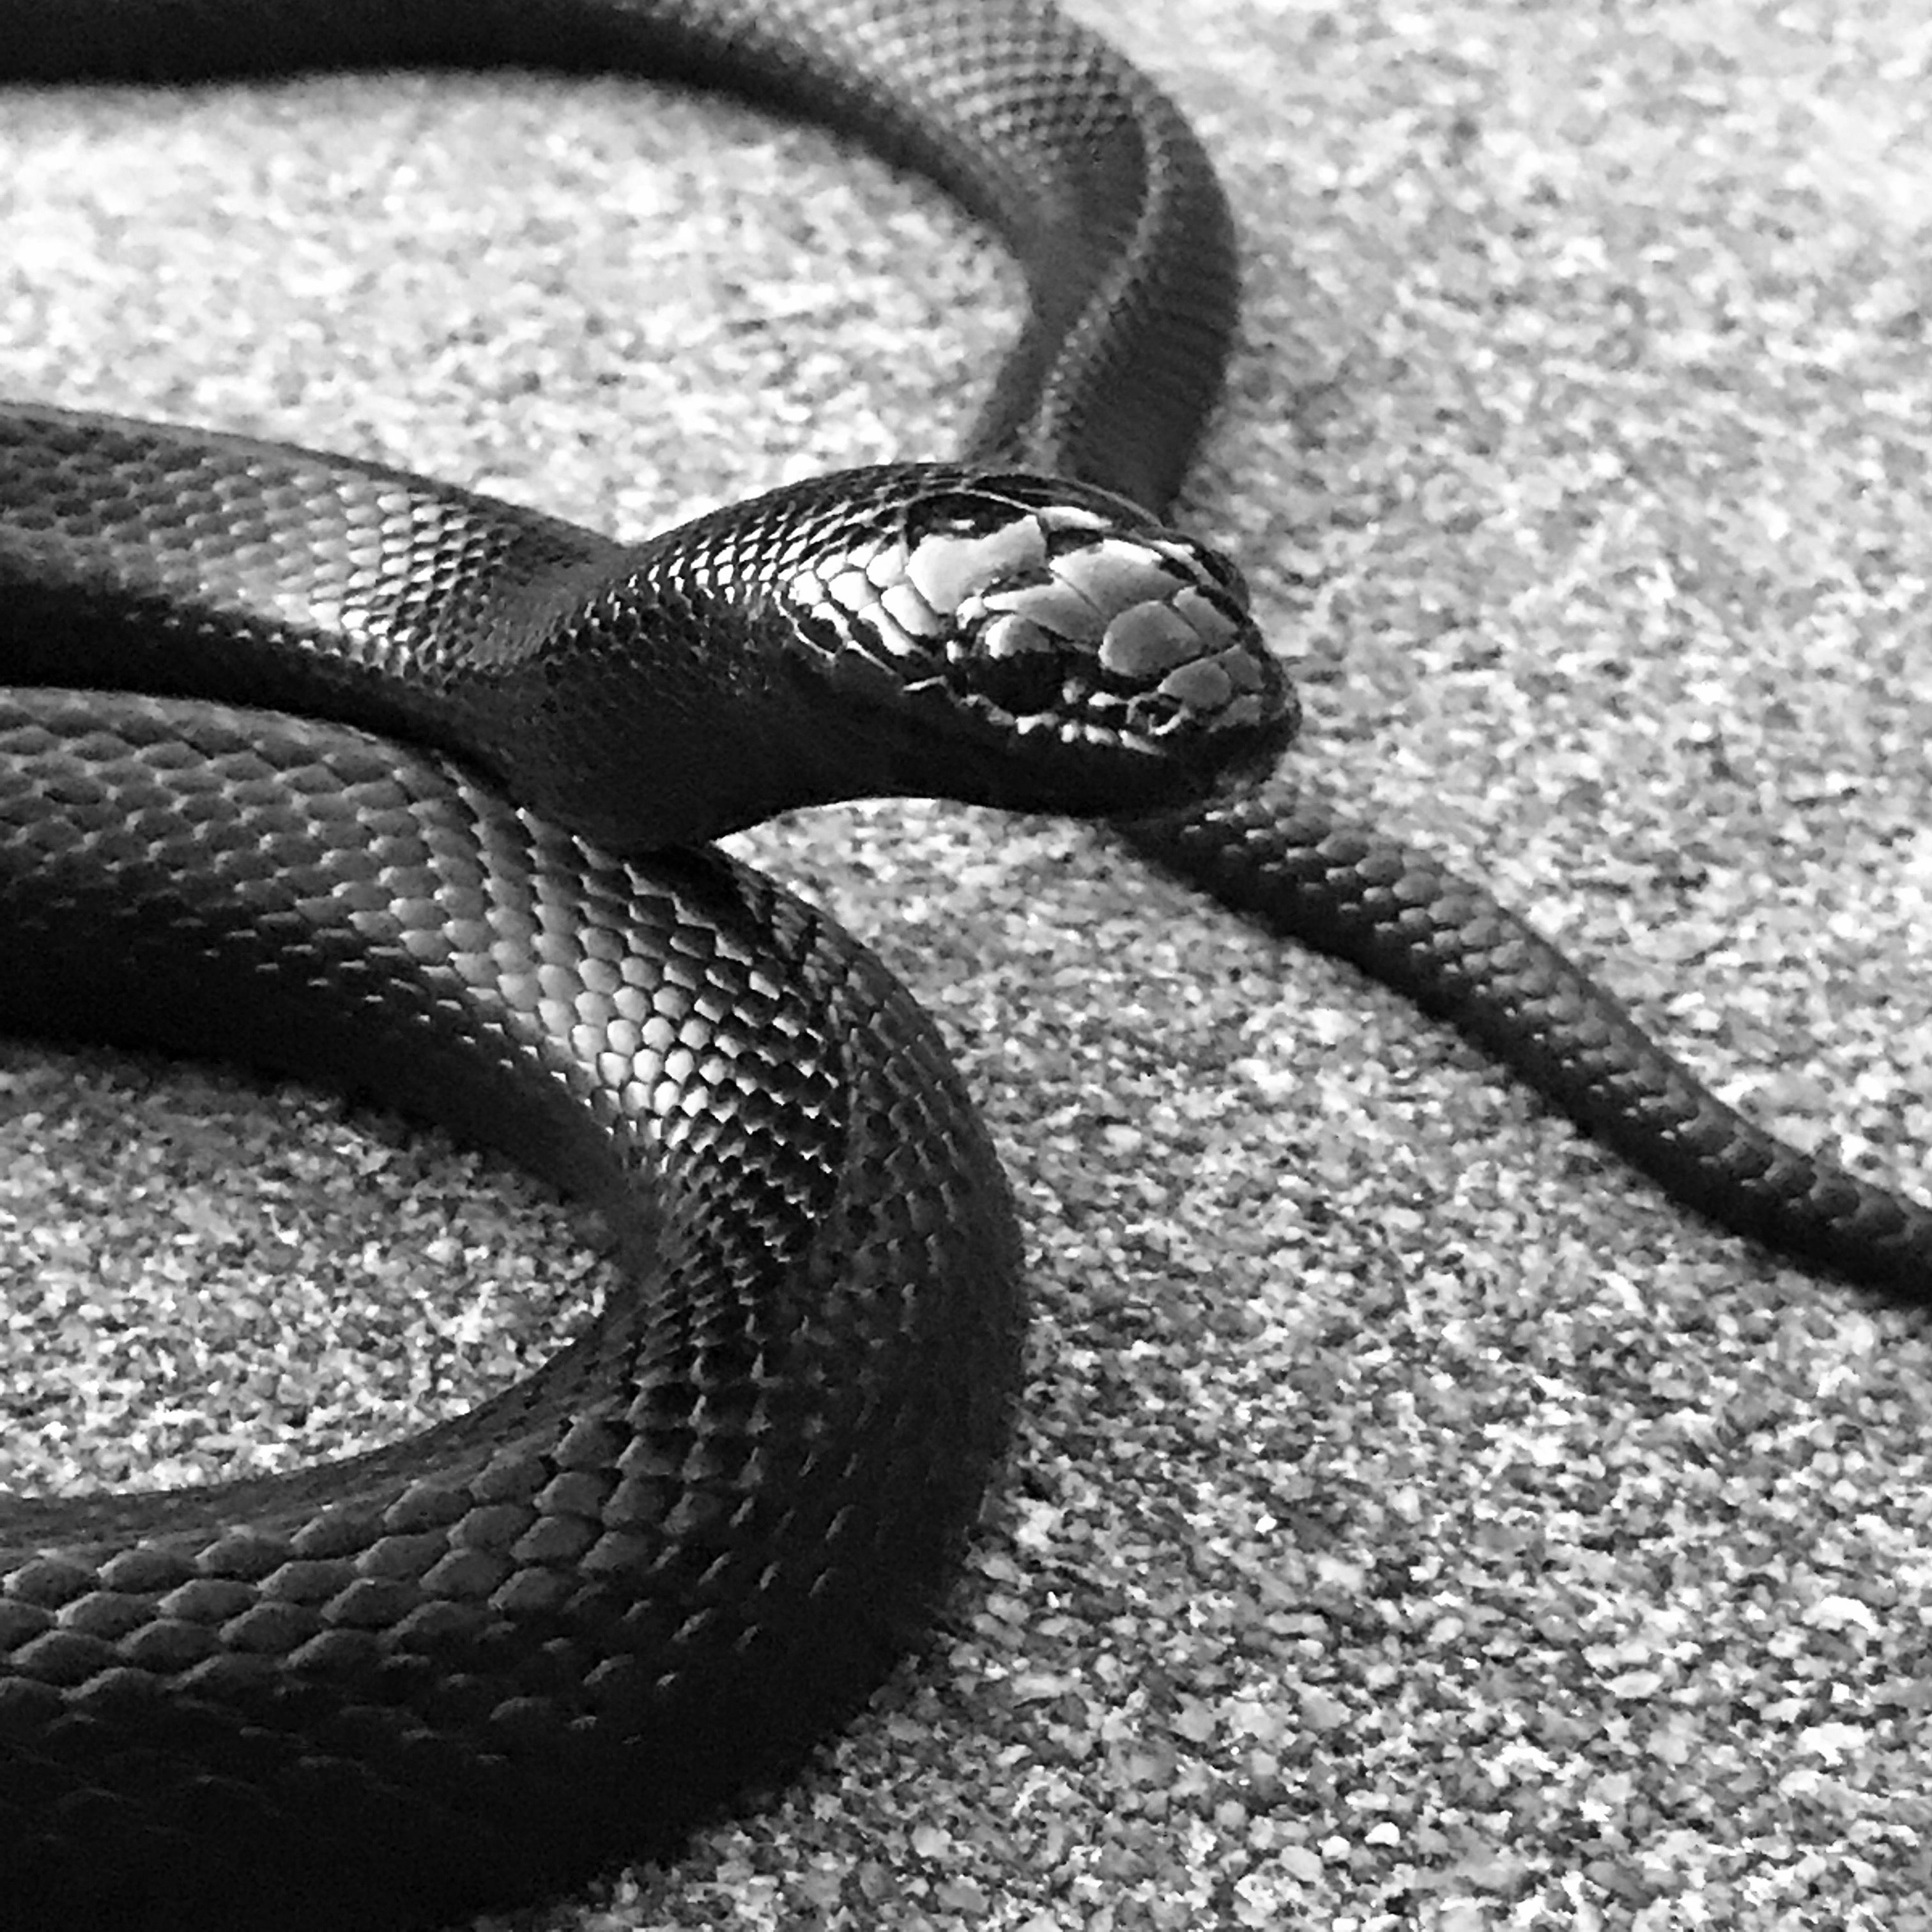 Mexican Black King Snake In Black-And-White  Cool Stuff -1673